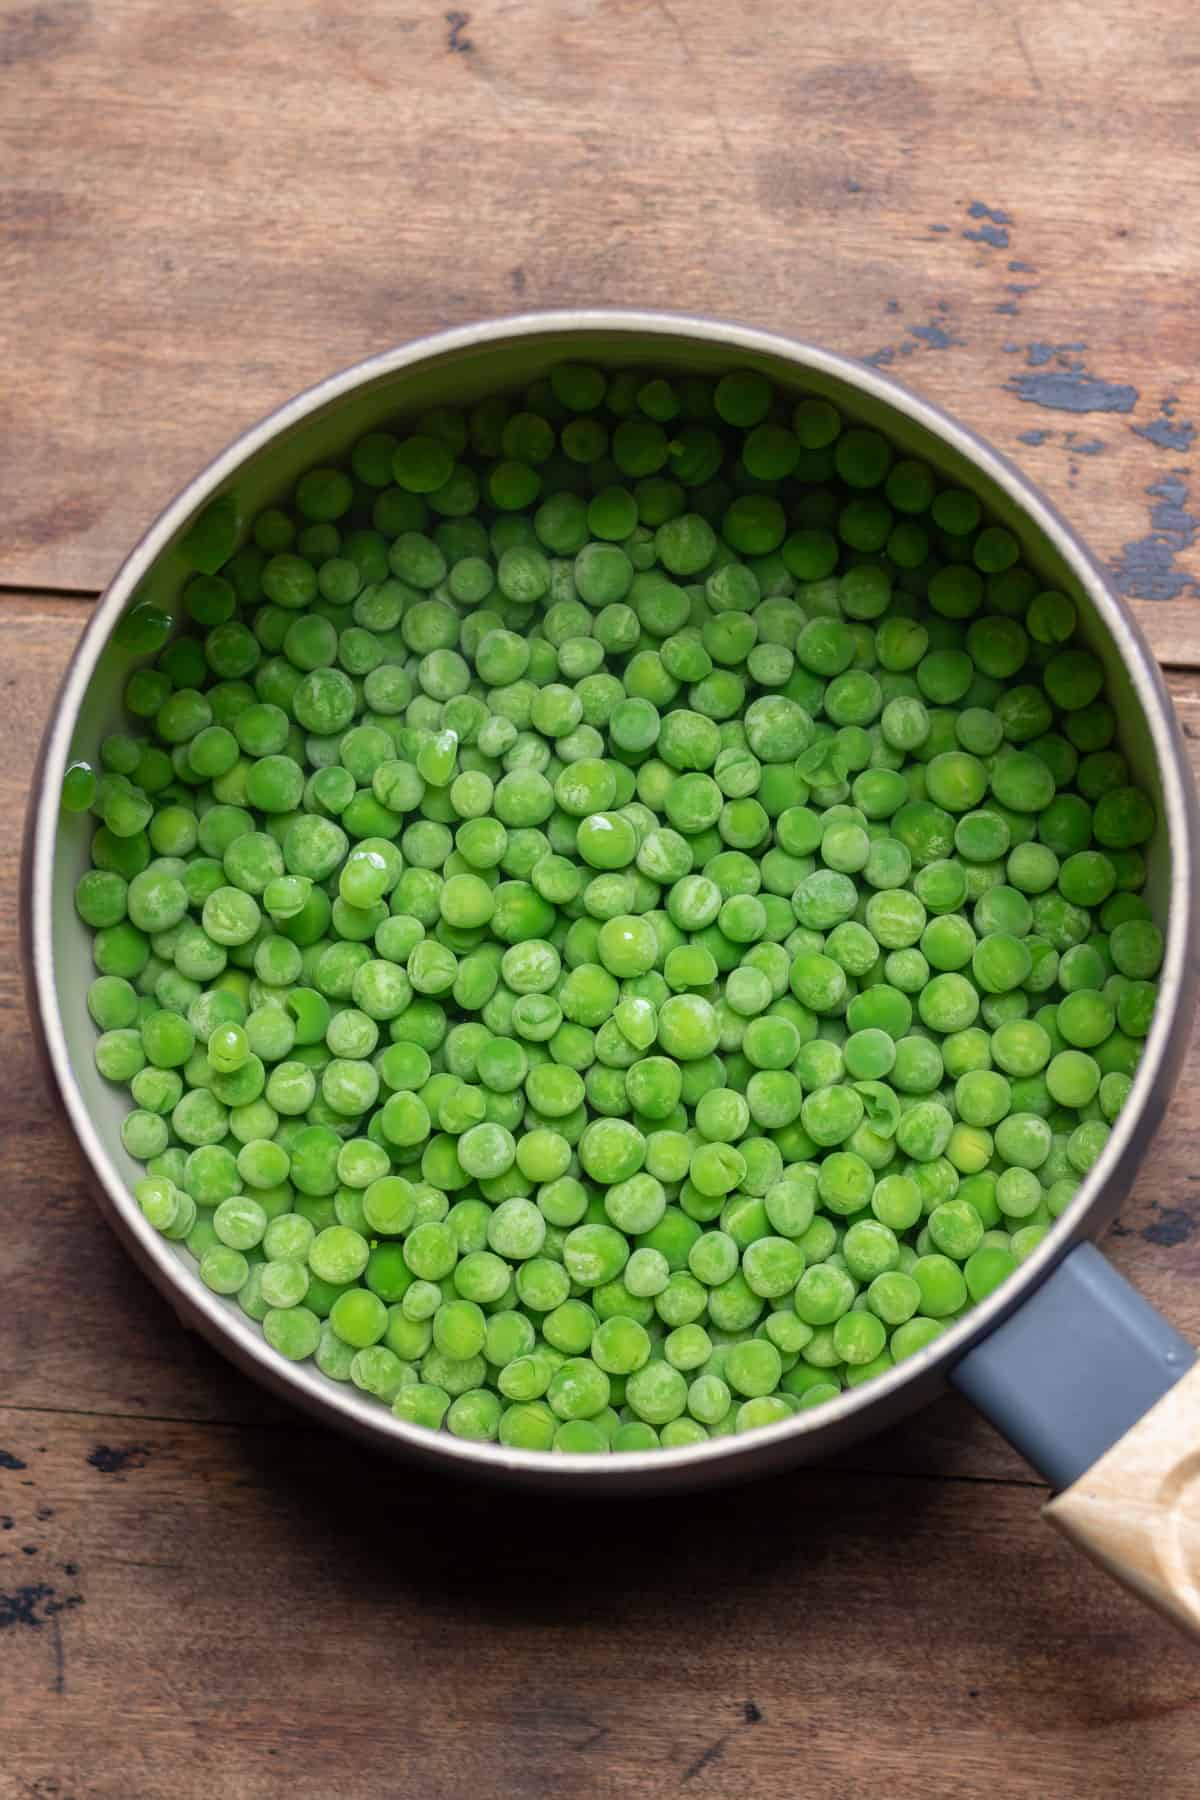 Peas boiling in a pot.